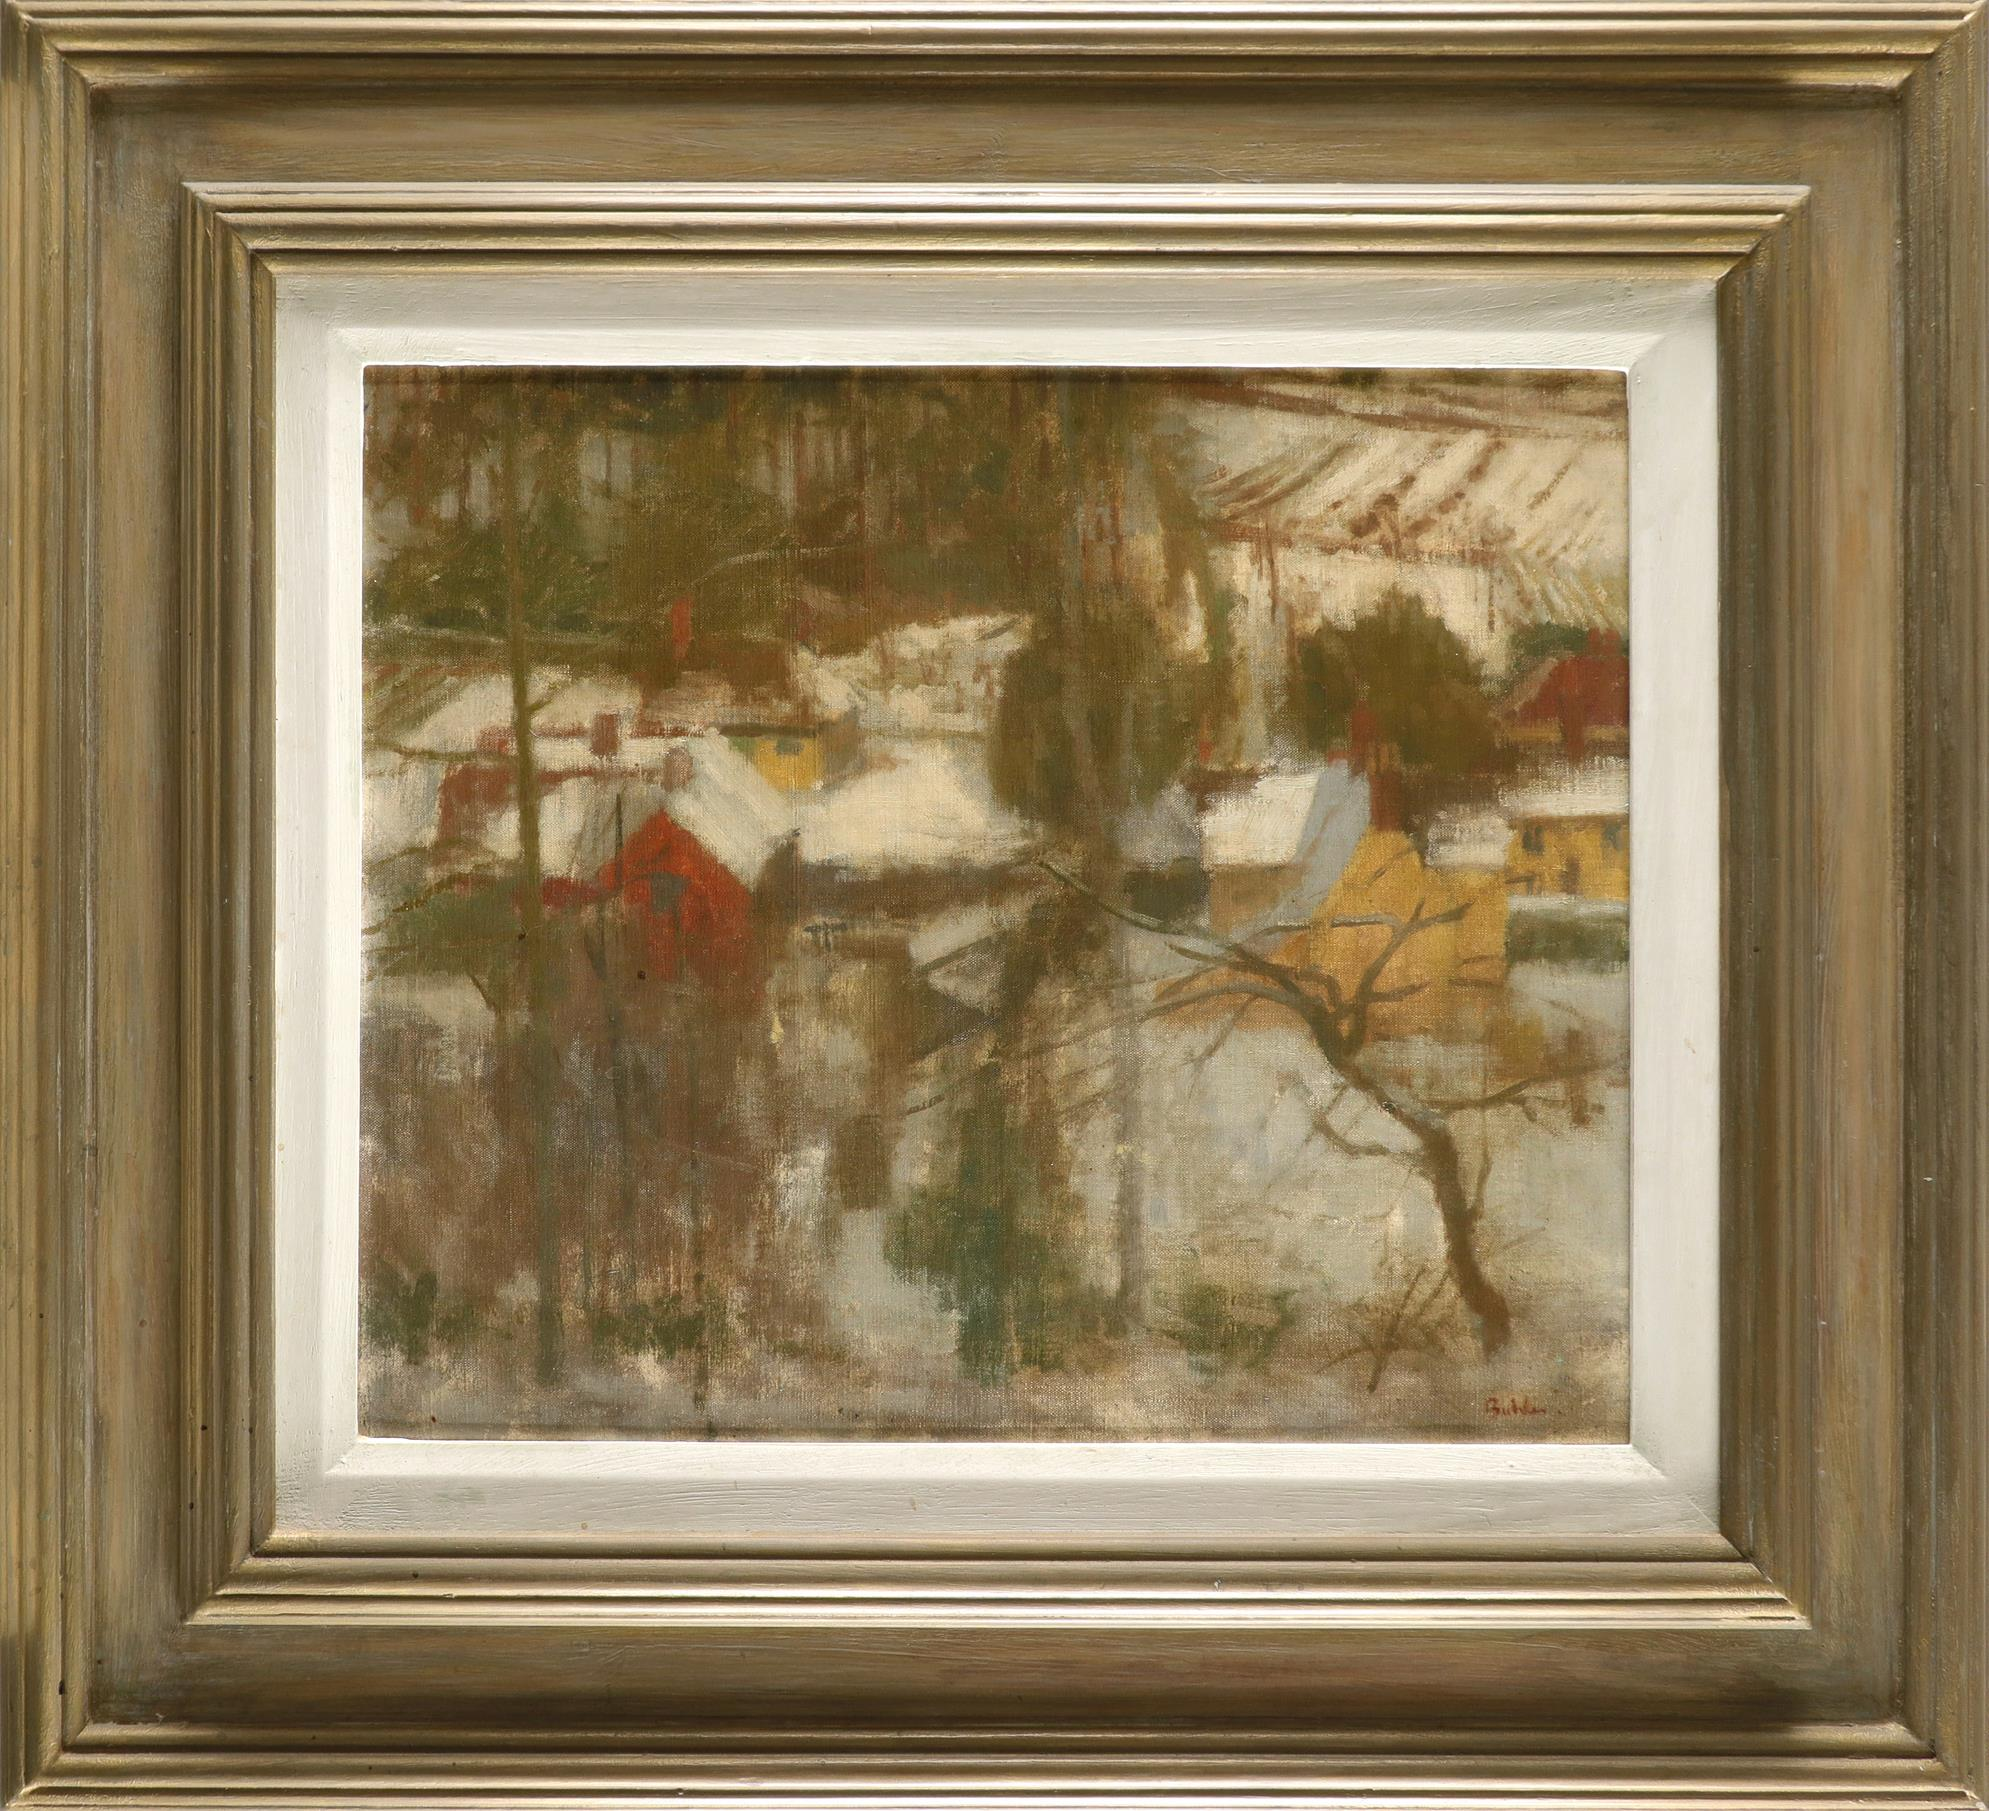 ‡Robert Buhler RA (1916-1989) Snow, Borden Wood Signed Buhler. (lower right) Oil on canvas laid down - Image 2 of 3